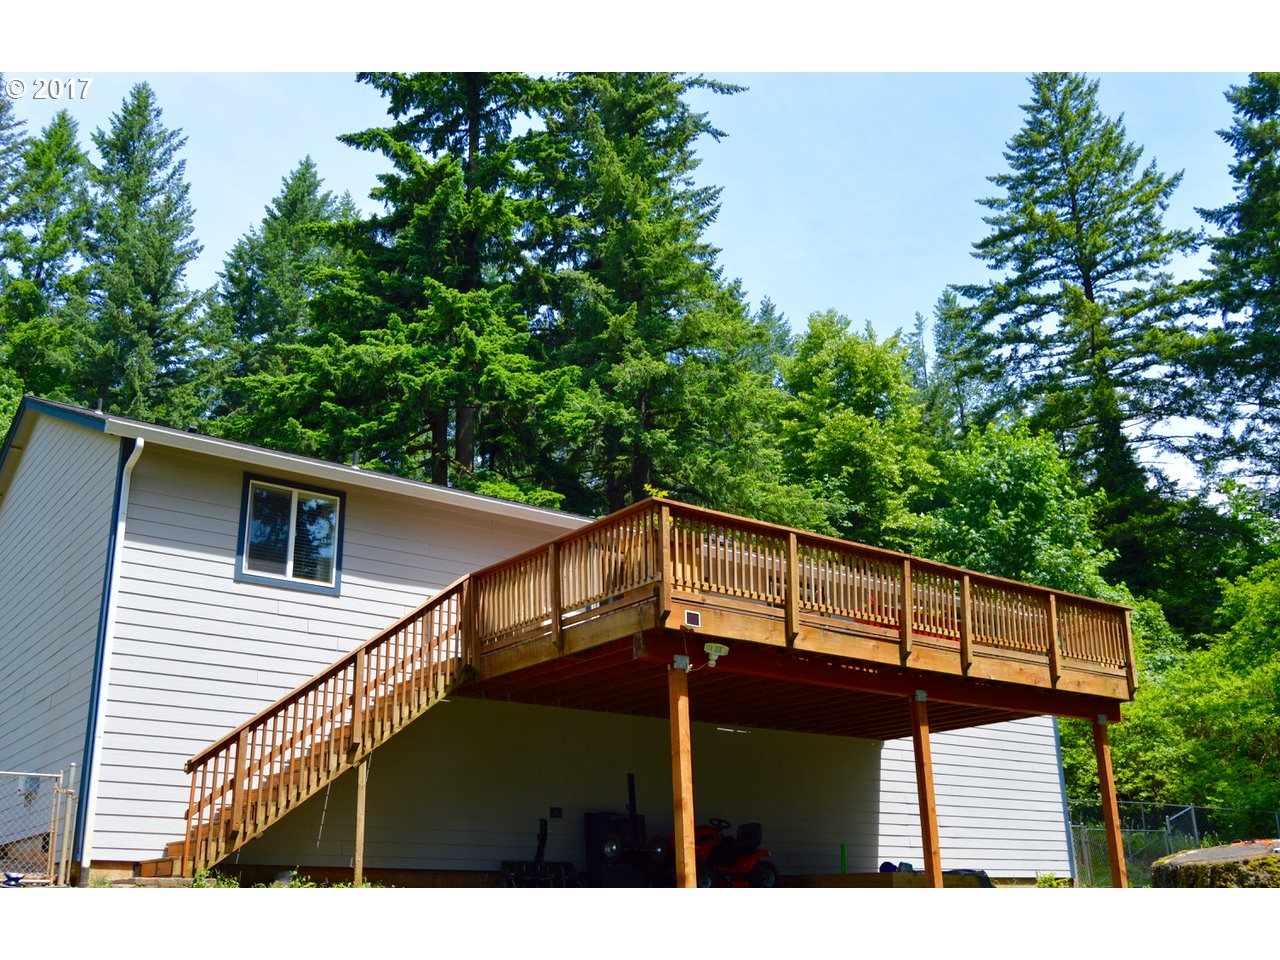 27409 NE 19TH ST Camas, WA 98607 - MLS #: 17691895